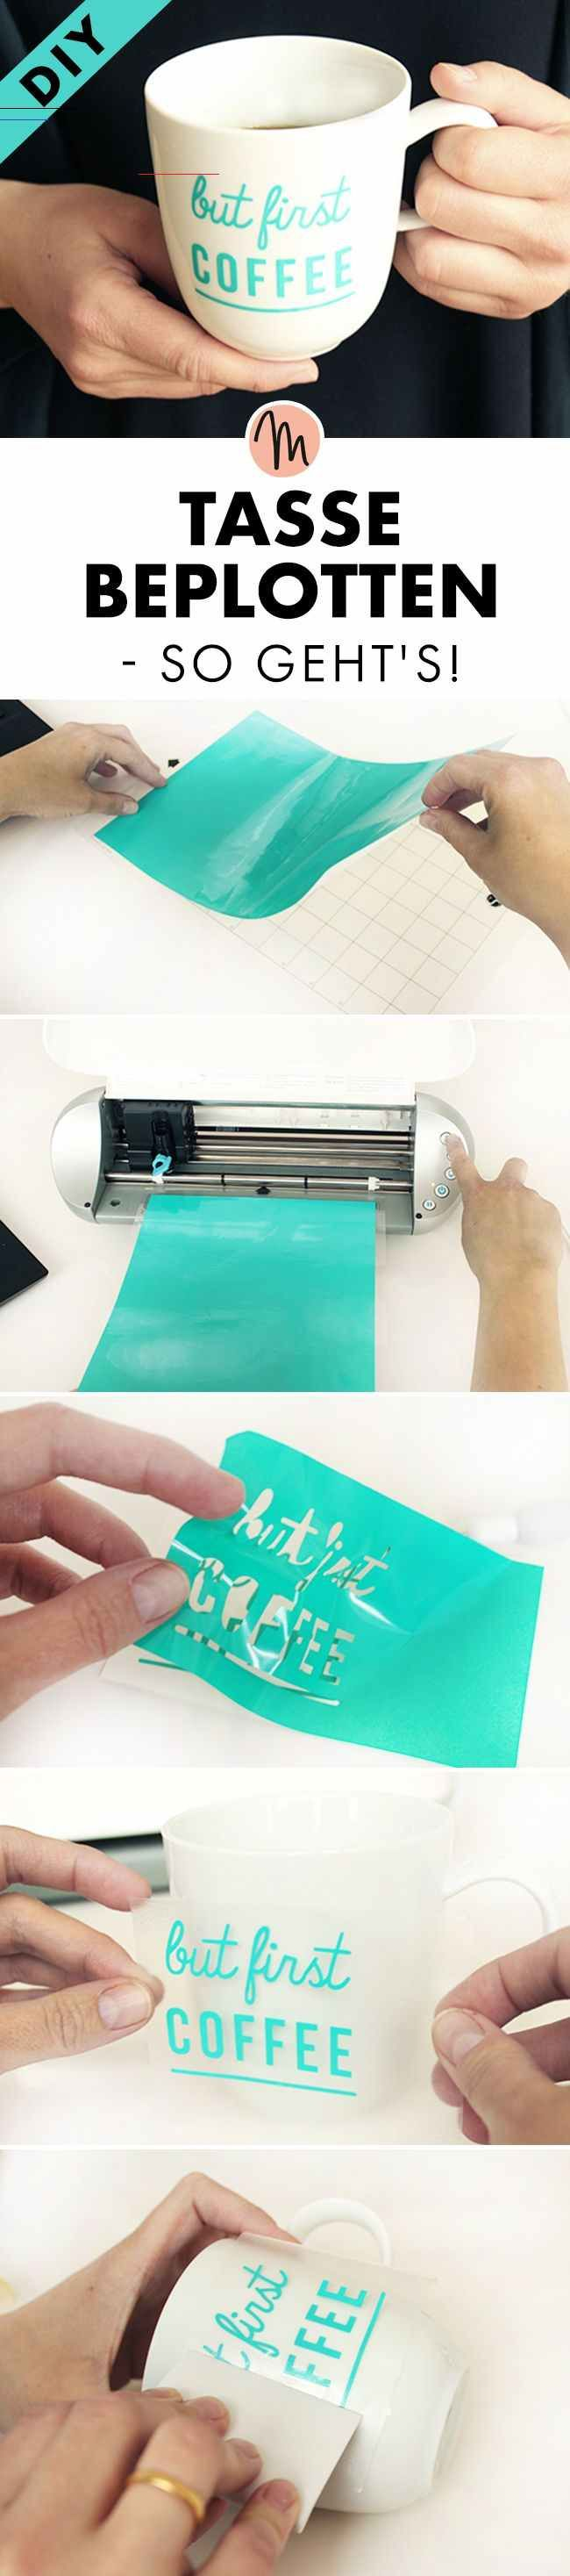 plotterideen in 2020 Diy projects to sell, Diy crafts